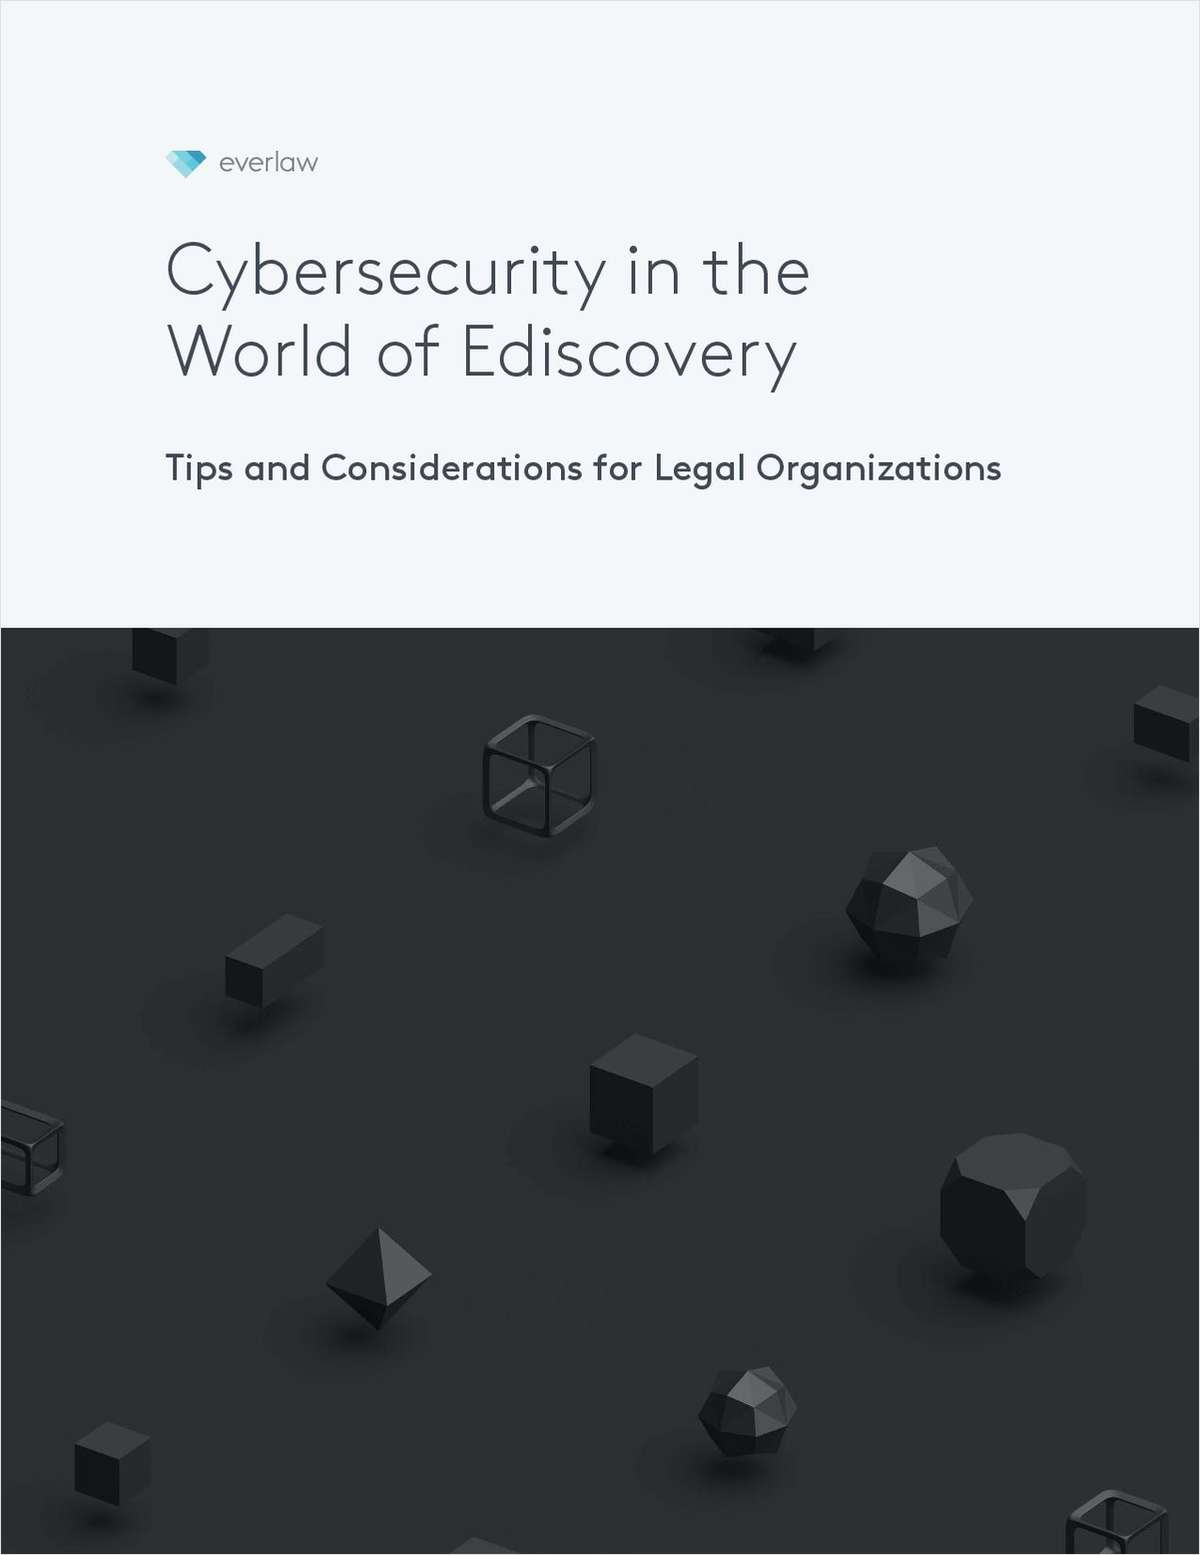 Security in the World of Ediscovery: Tips and Considerations for Law Firms